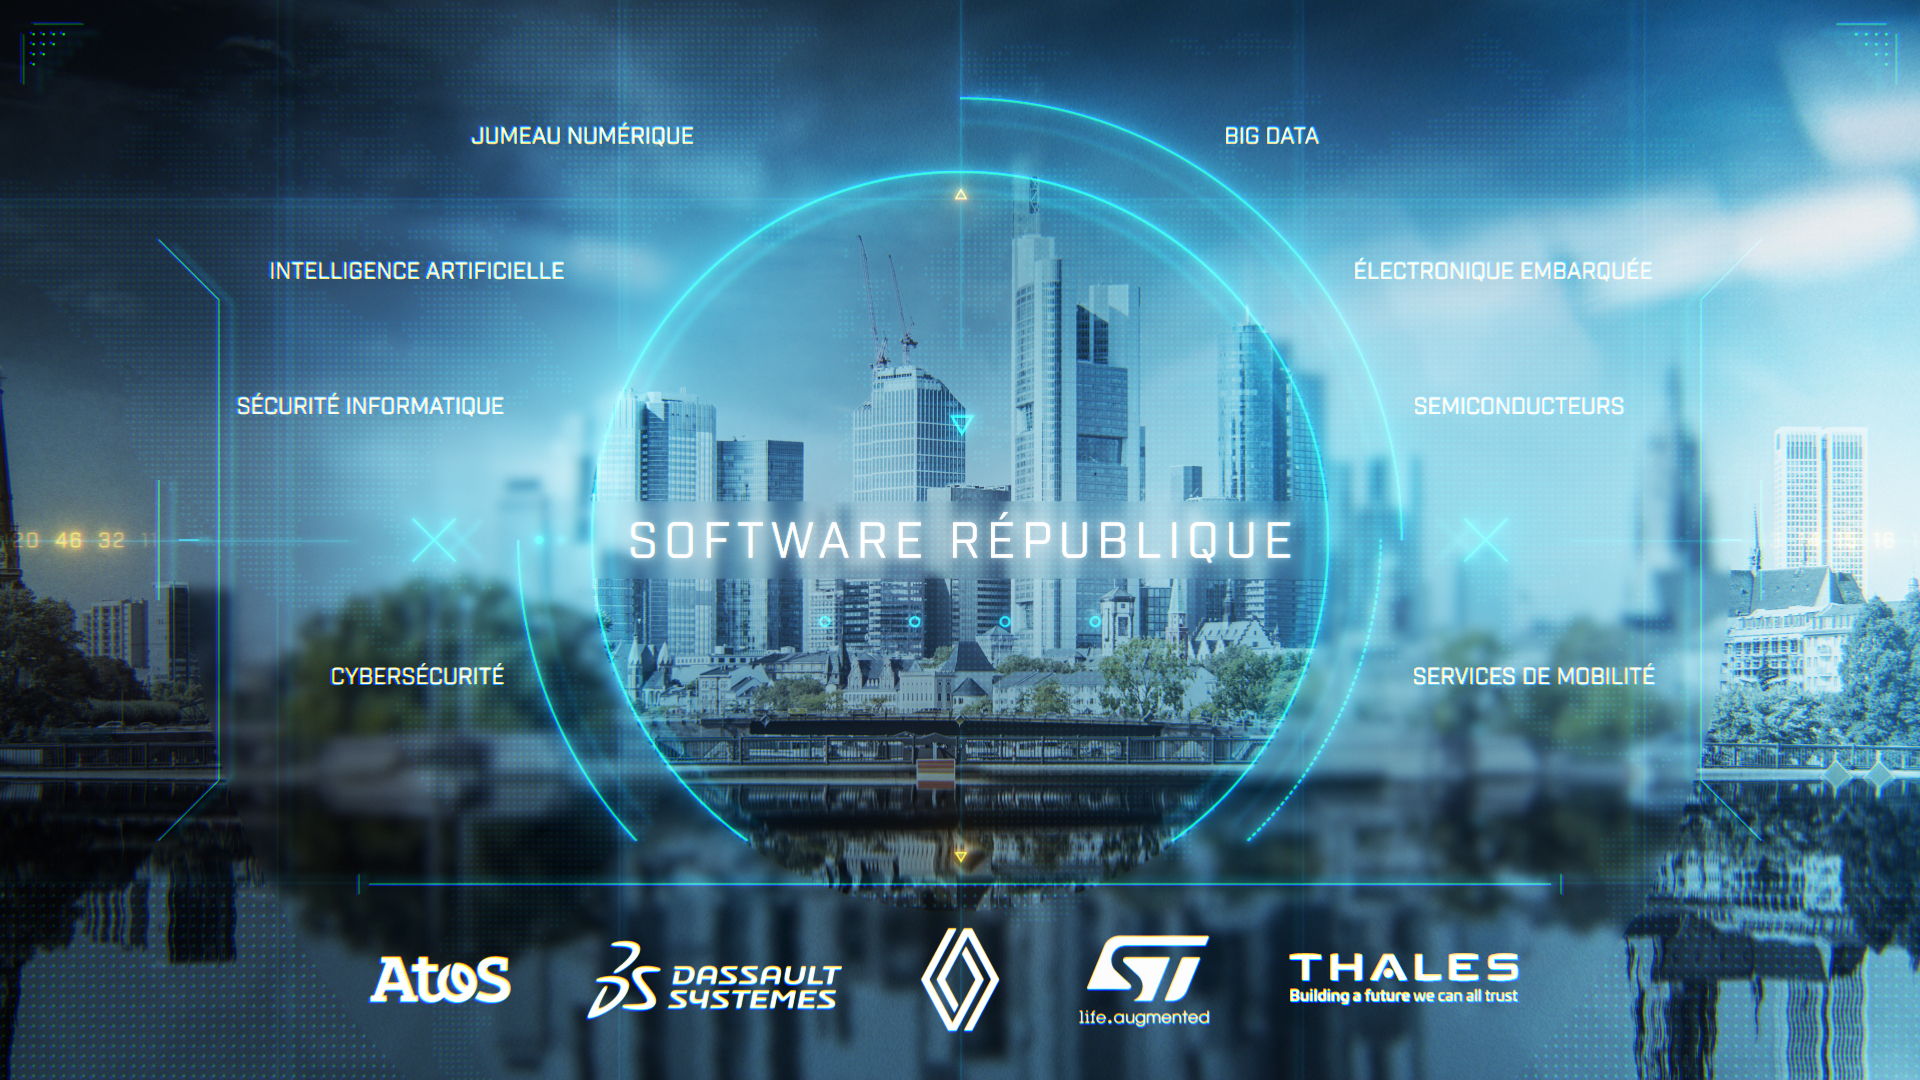 software republique